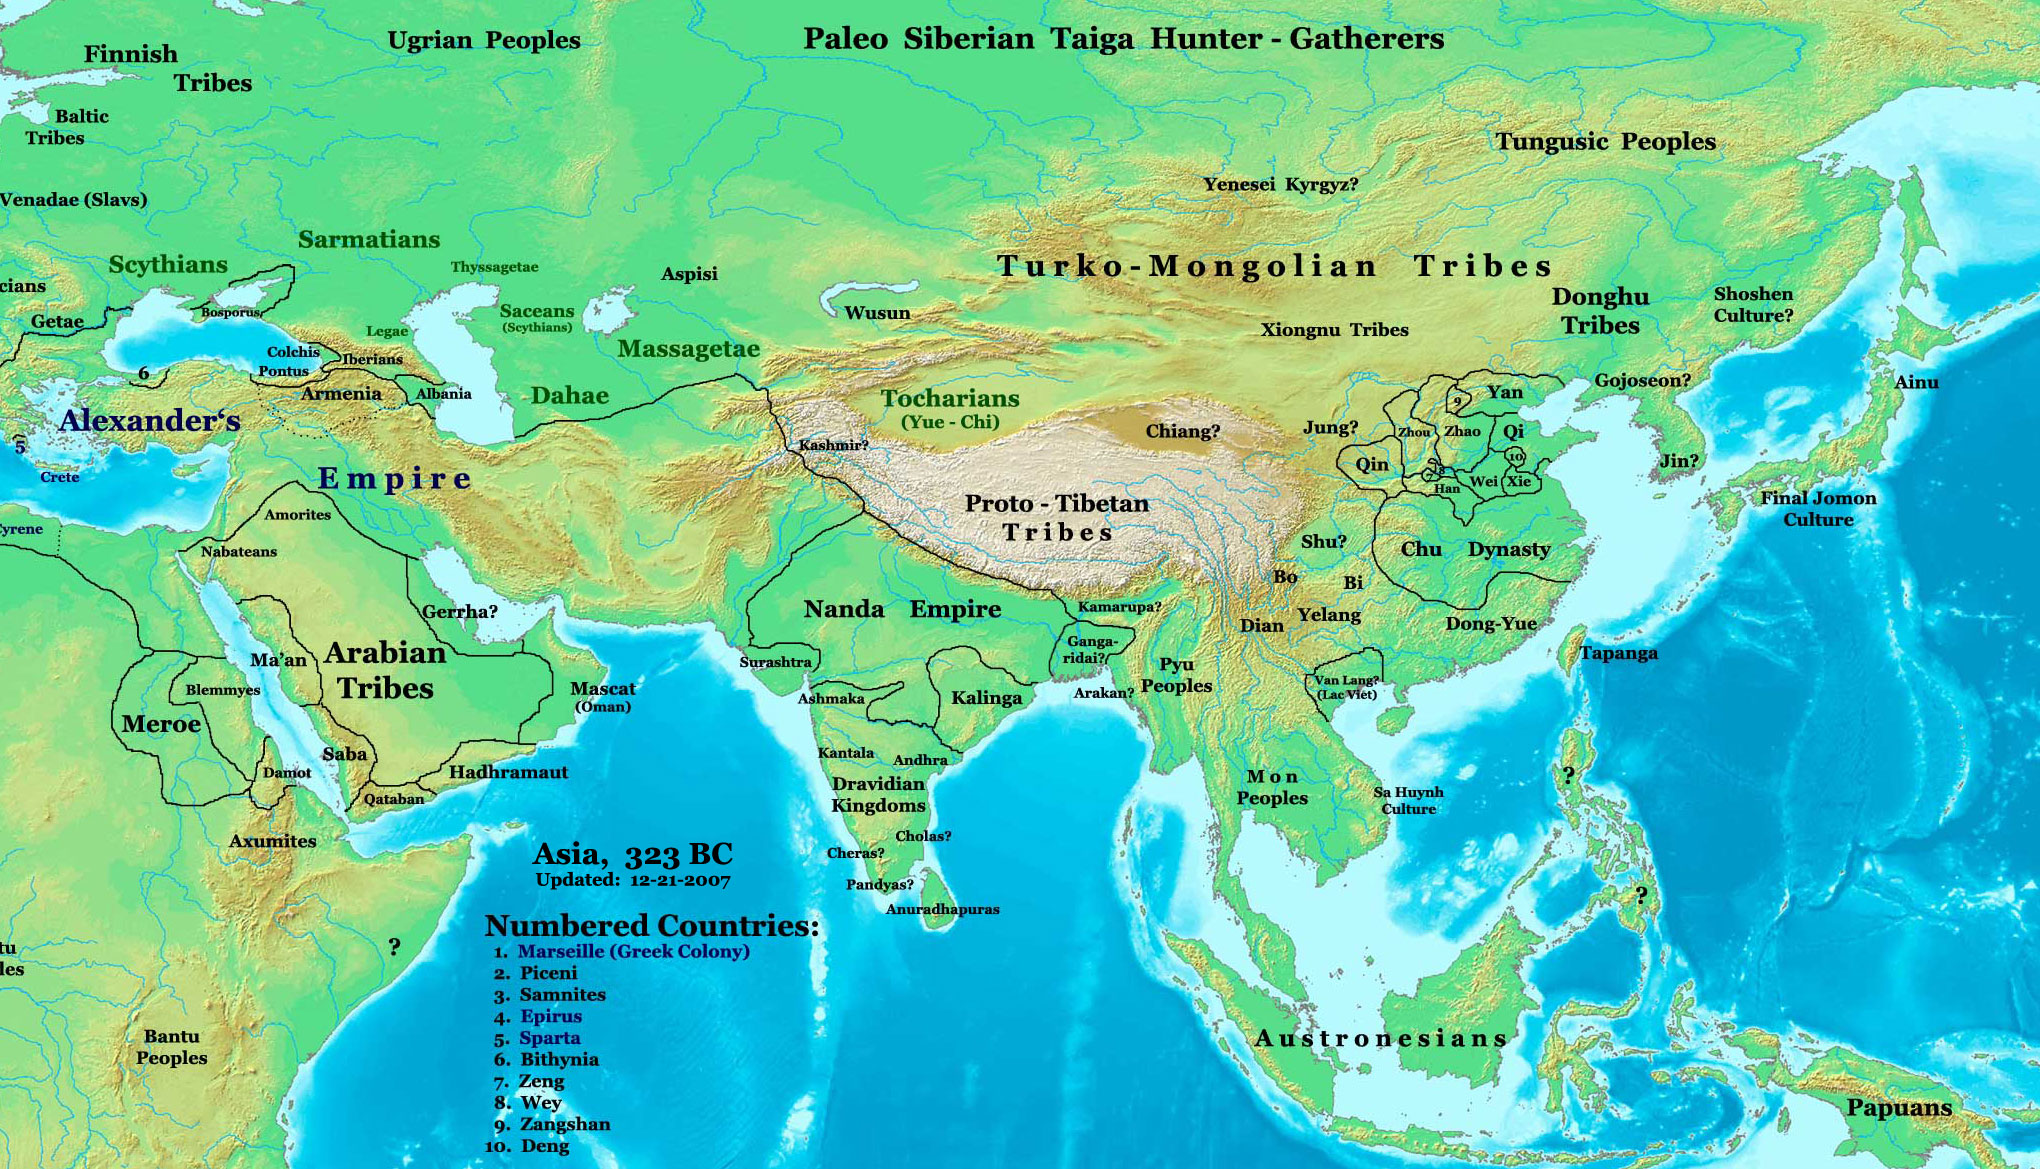 Asia in 323 BCE, the Nanda Empire and Gangaridai Empire in relation to Alexander's Empire and neighbors.